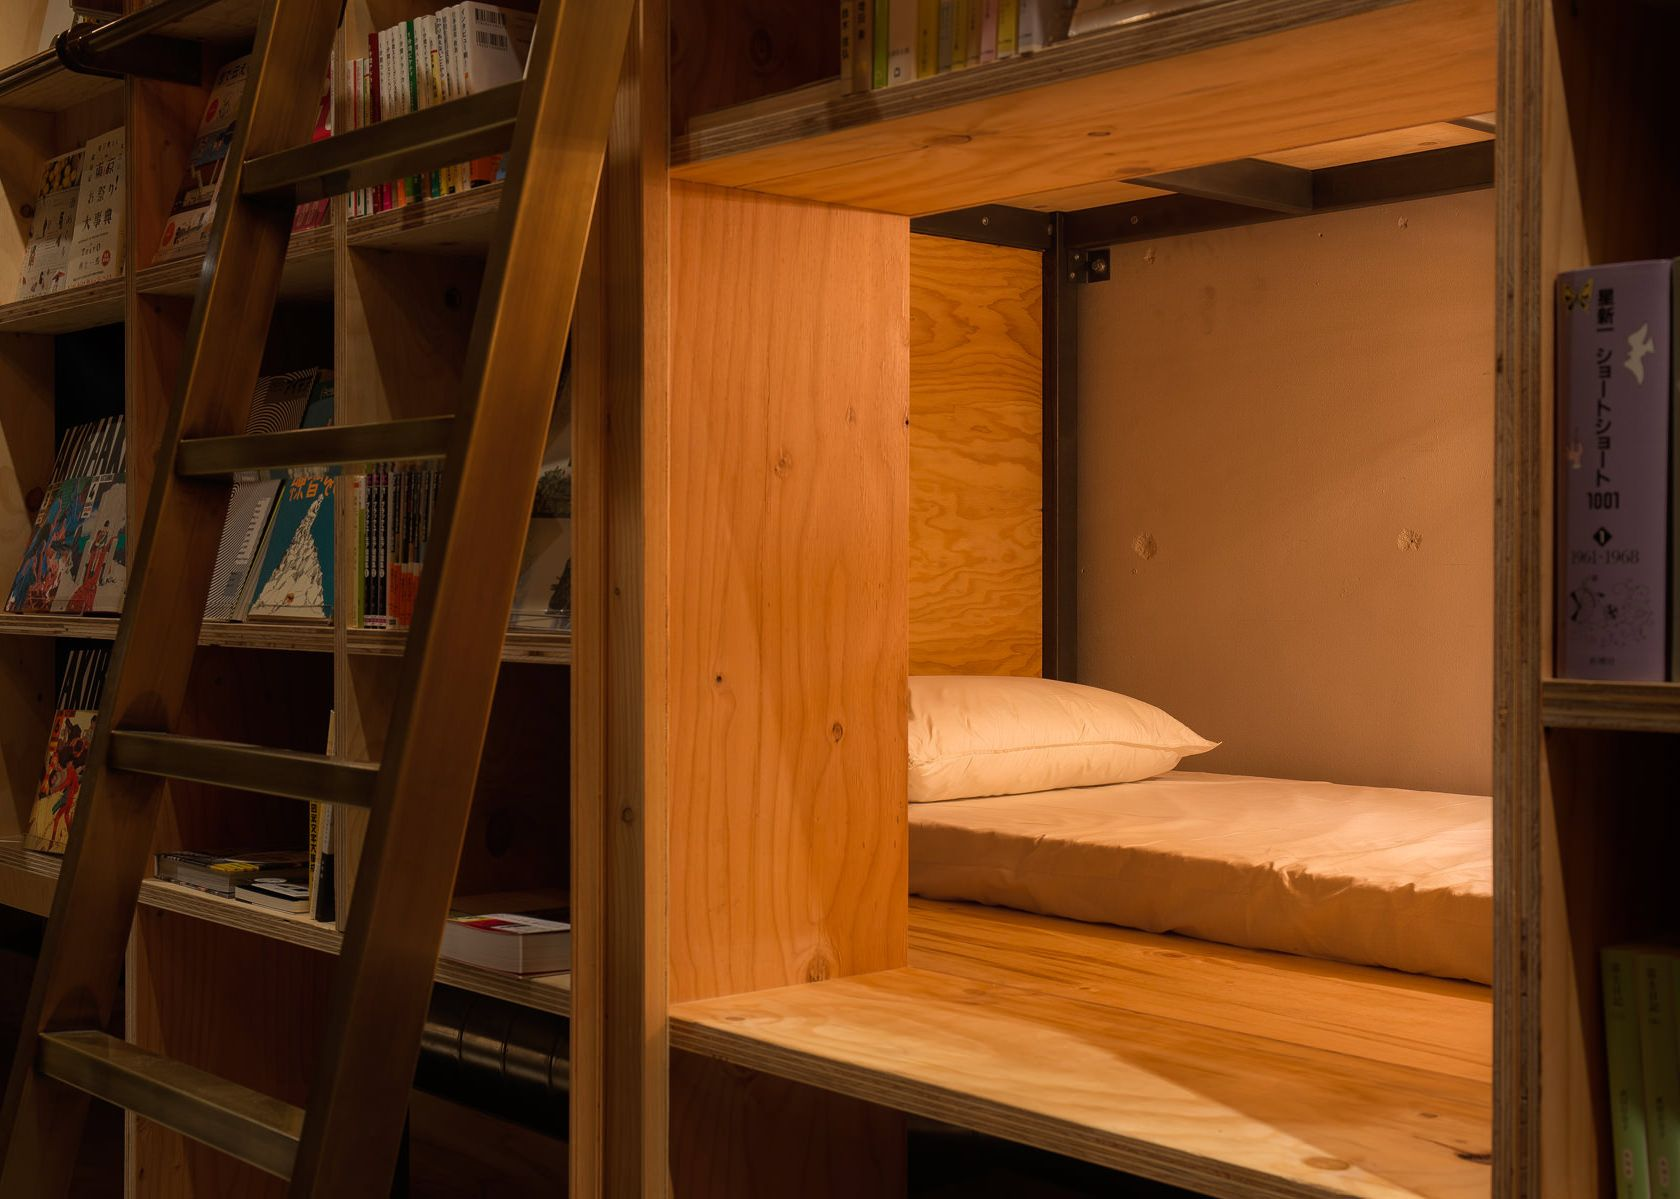 book-and-bed-tokyo4